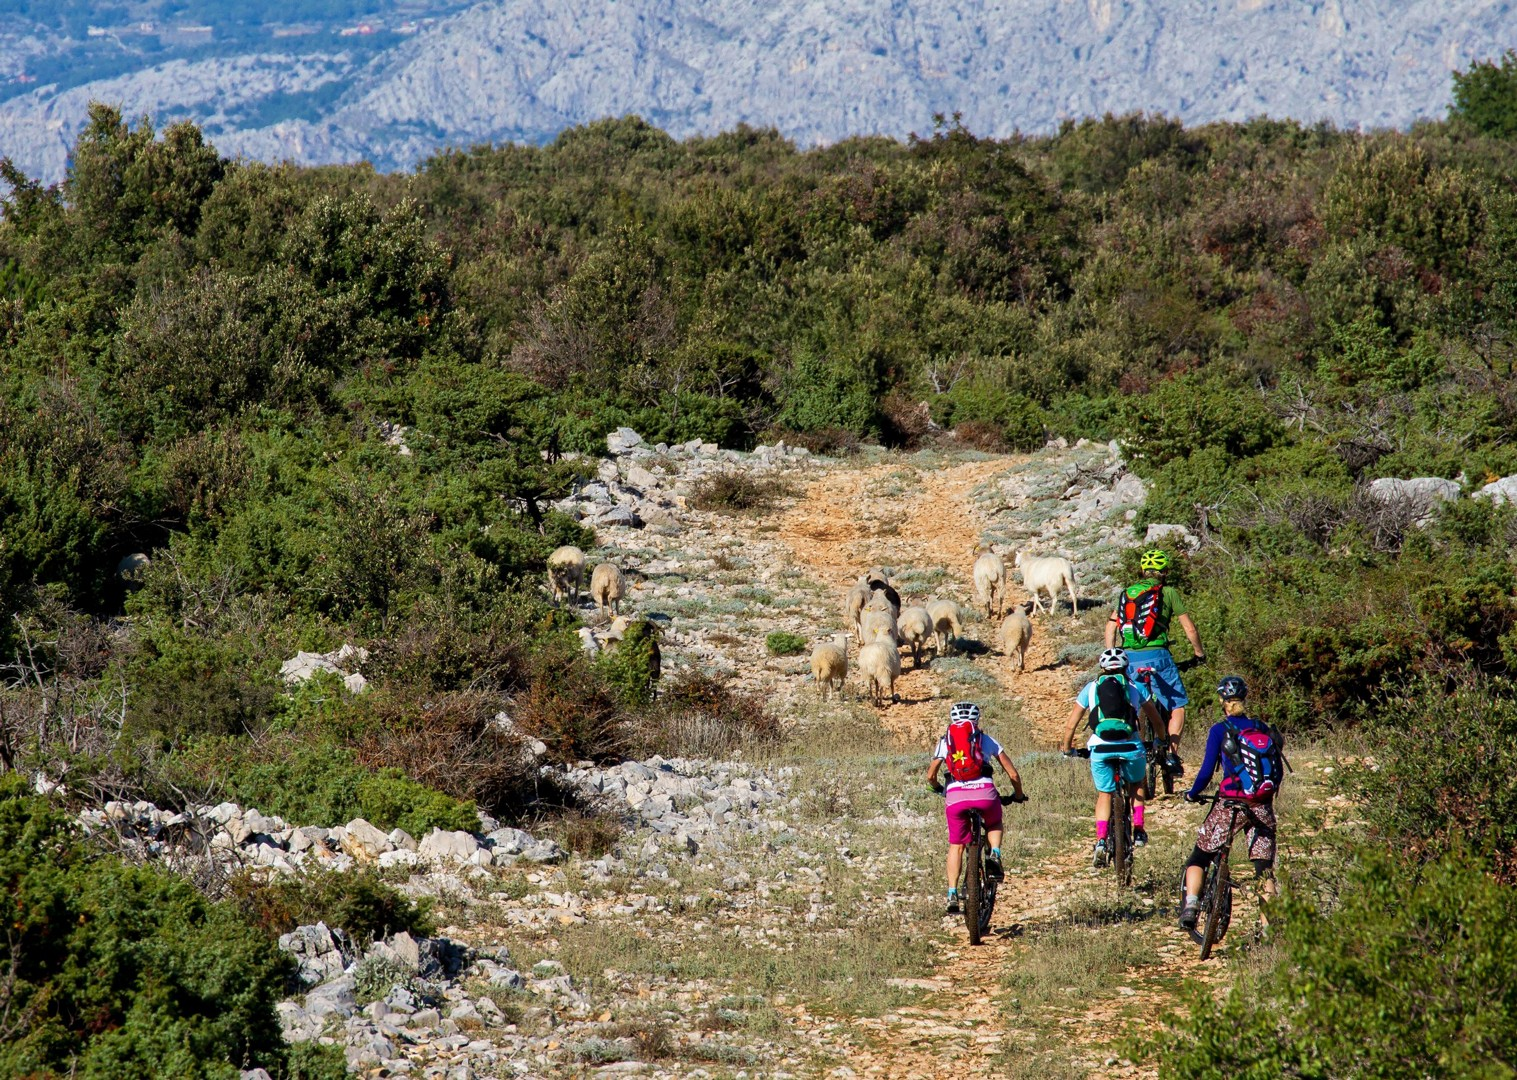 fun-singletrack-with-epic-sea-views-mountain-biking-croatia.jpg - Croatia - Terra Magica - Mountain Biking